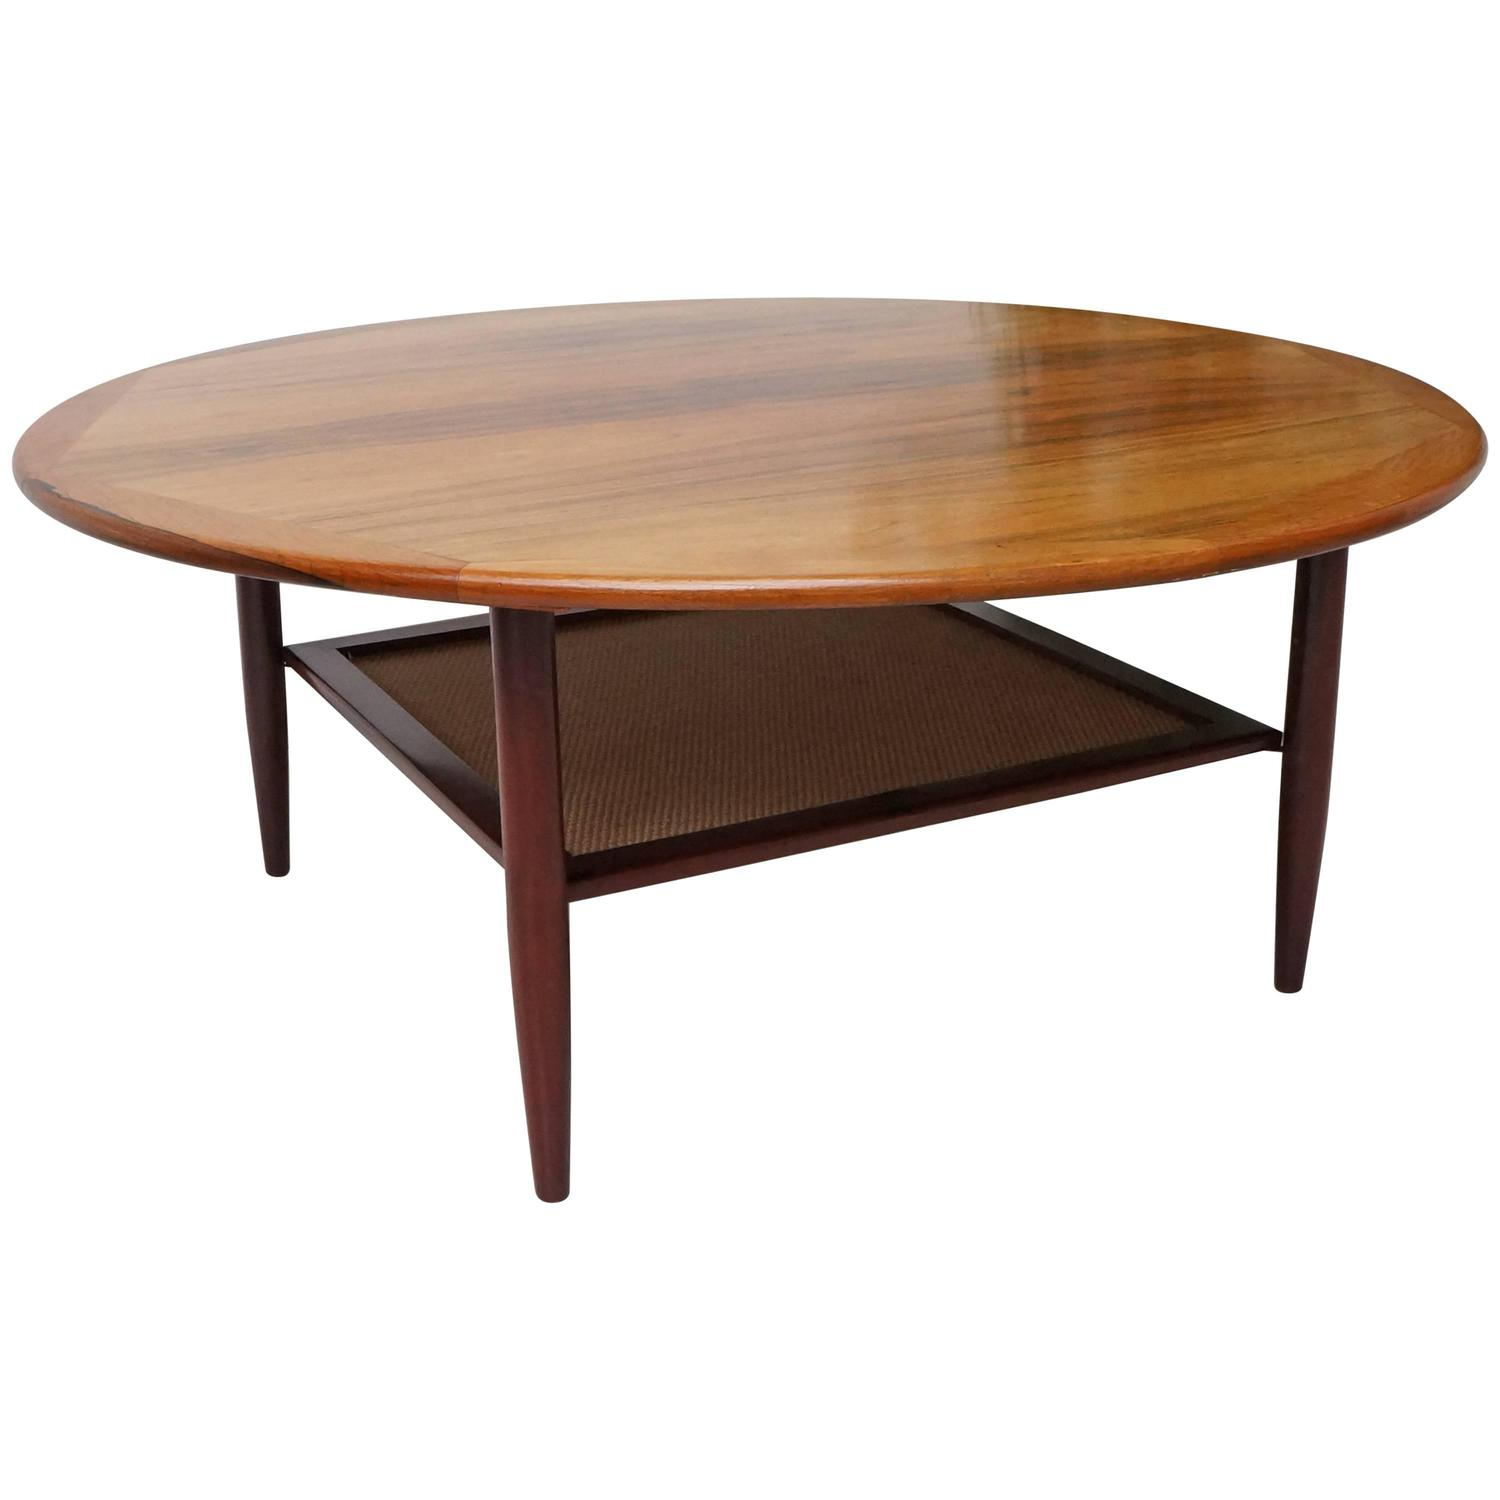 Large Round Wooden Coffee Table 1960s At 1stdibs: wide coffee table